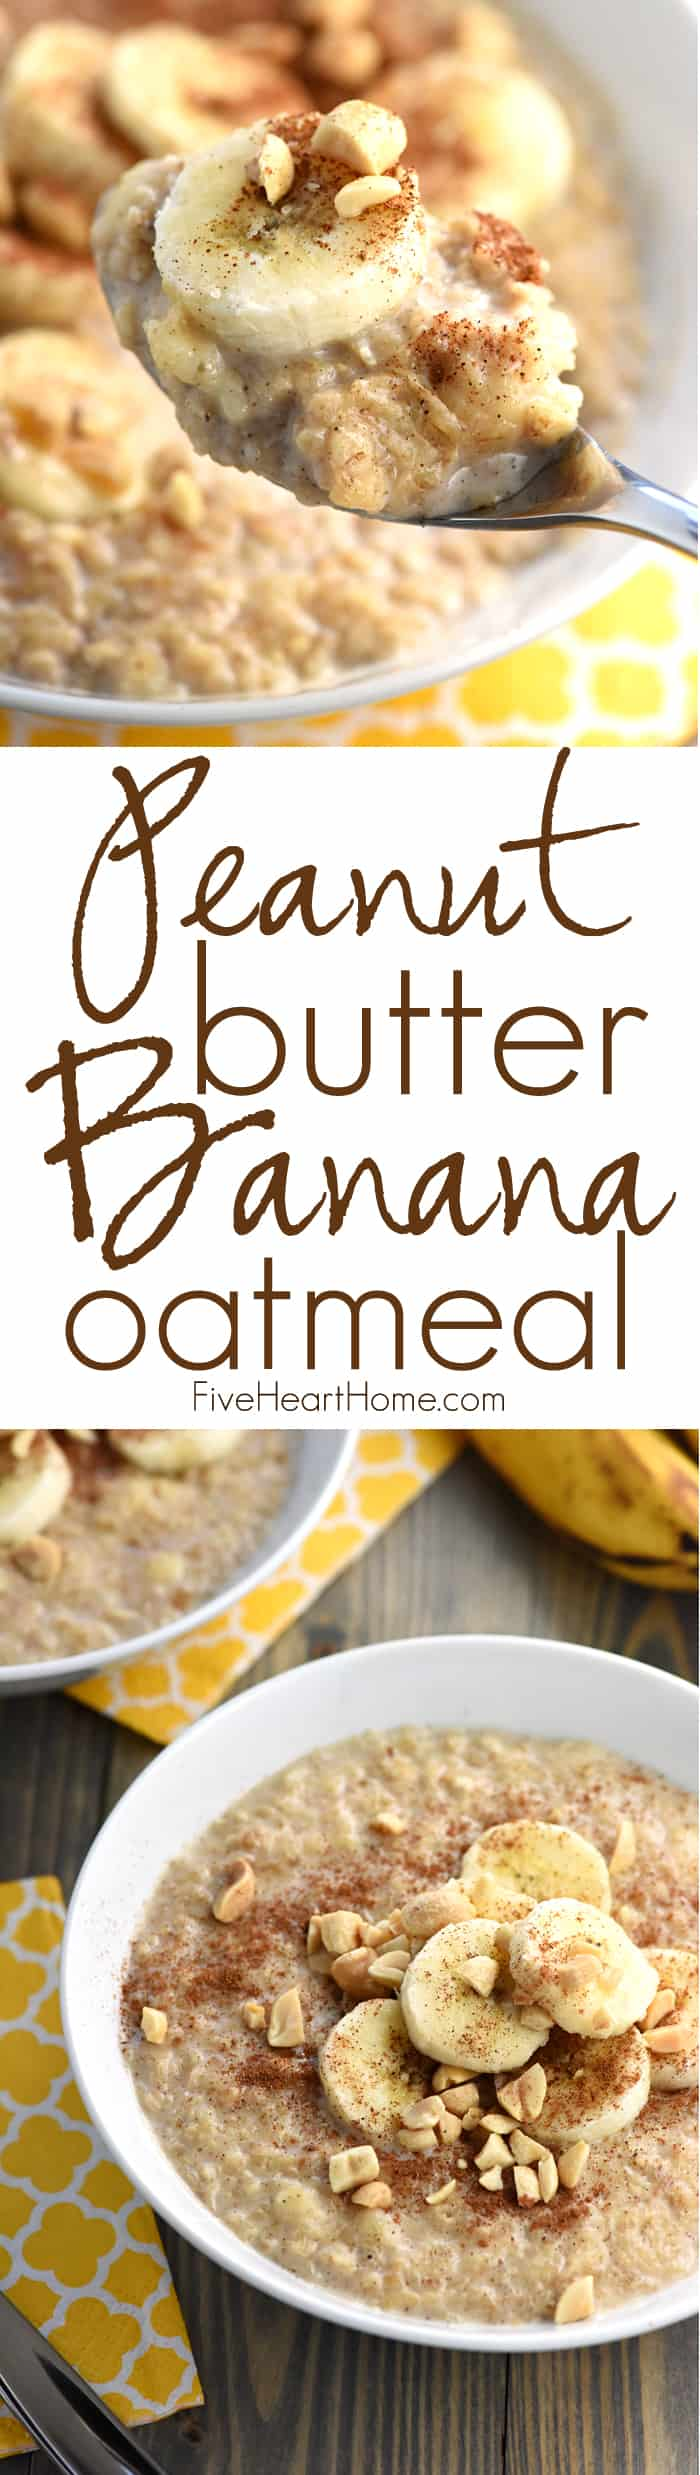 Peanut Butter Banana Oatmeal Collage with Text Overlay